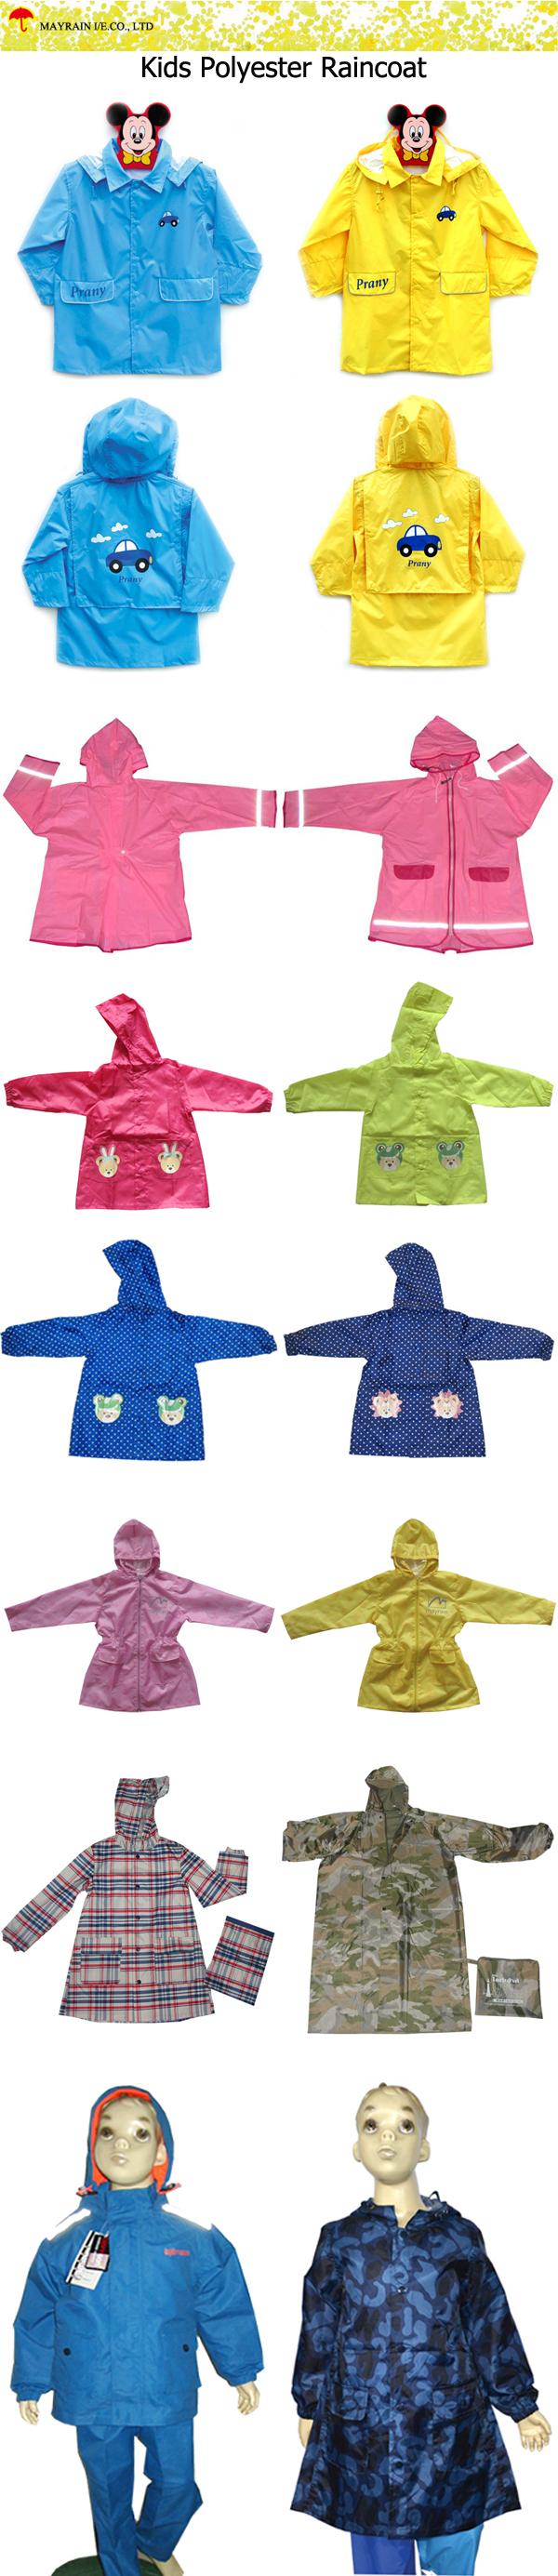 Kids Polyester Raincoat